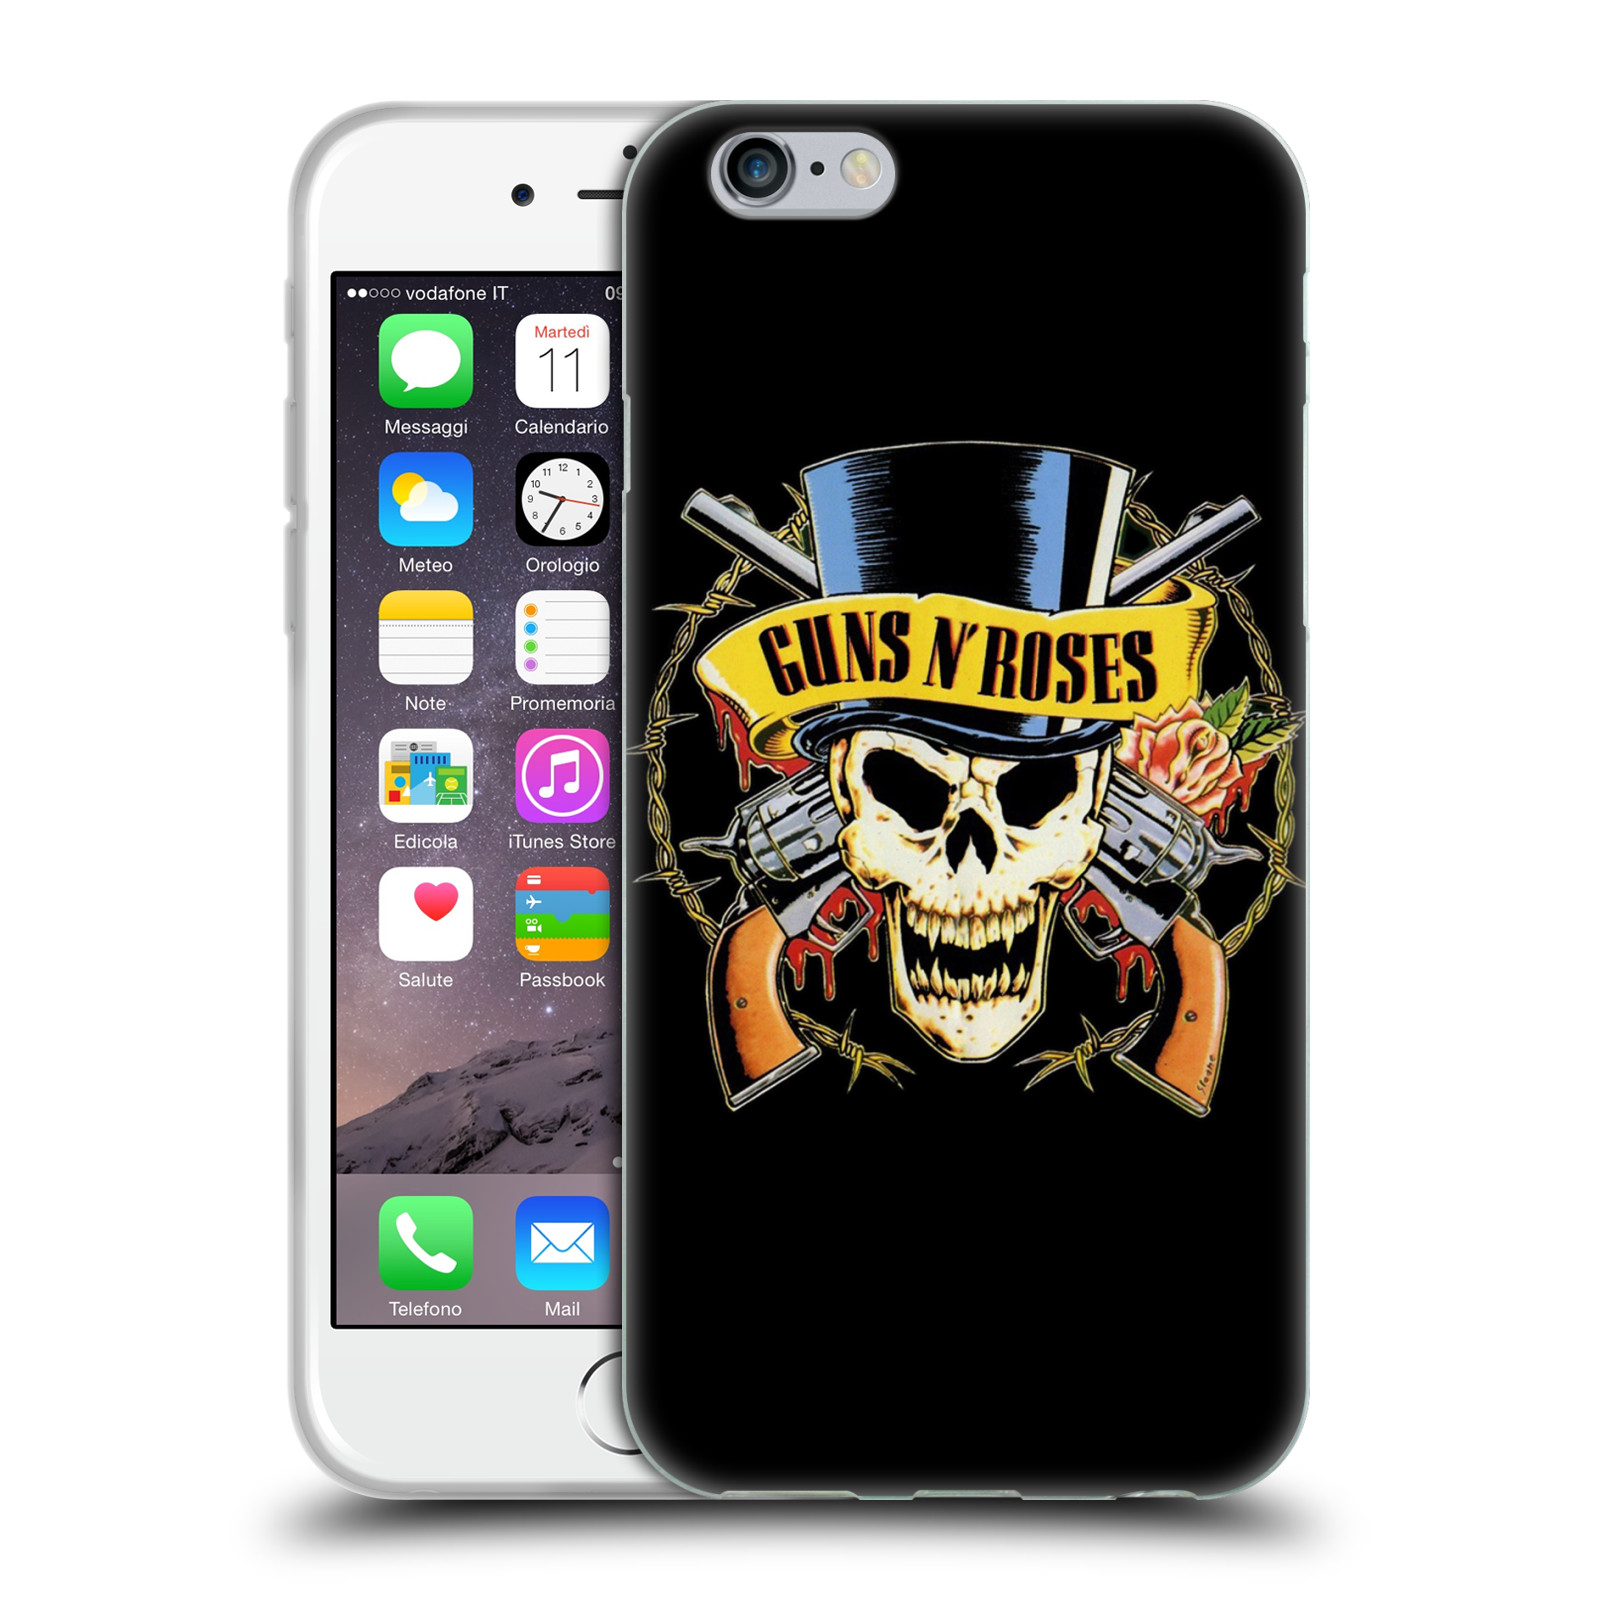 Silikonové pouzdro na mobil Apple iPhone 6 HEAD CASE Guns N' Roses - Lebka